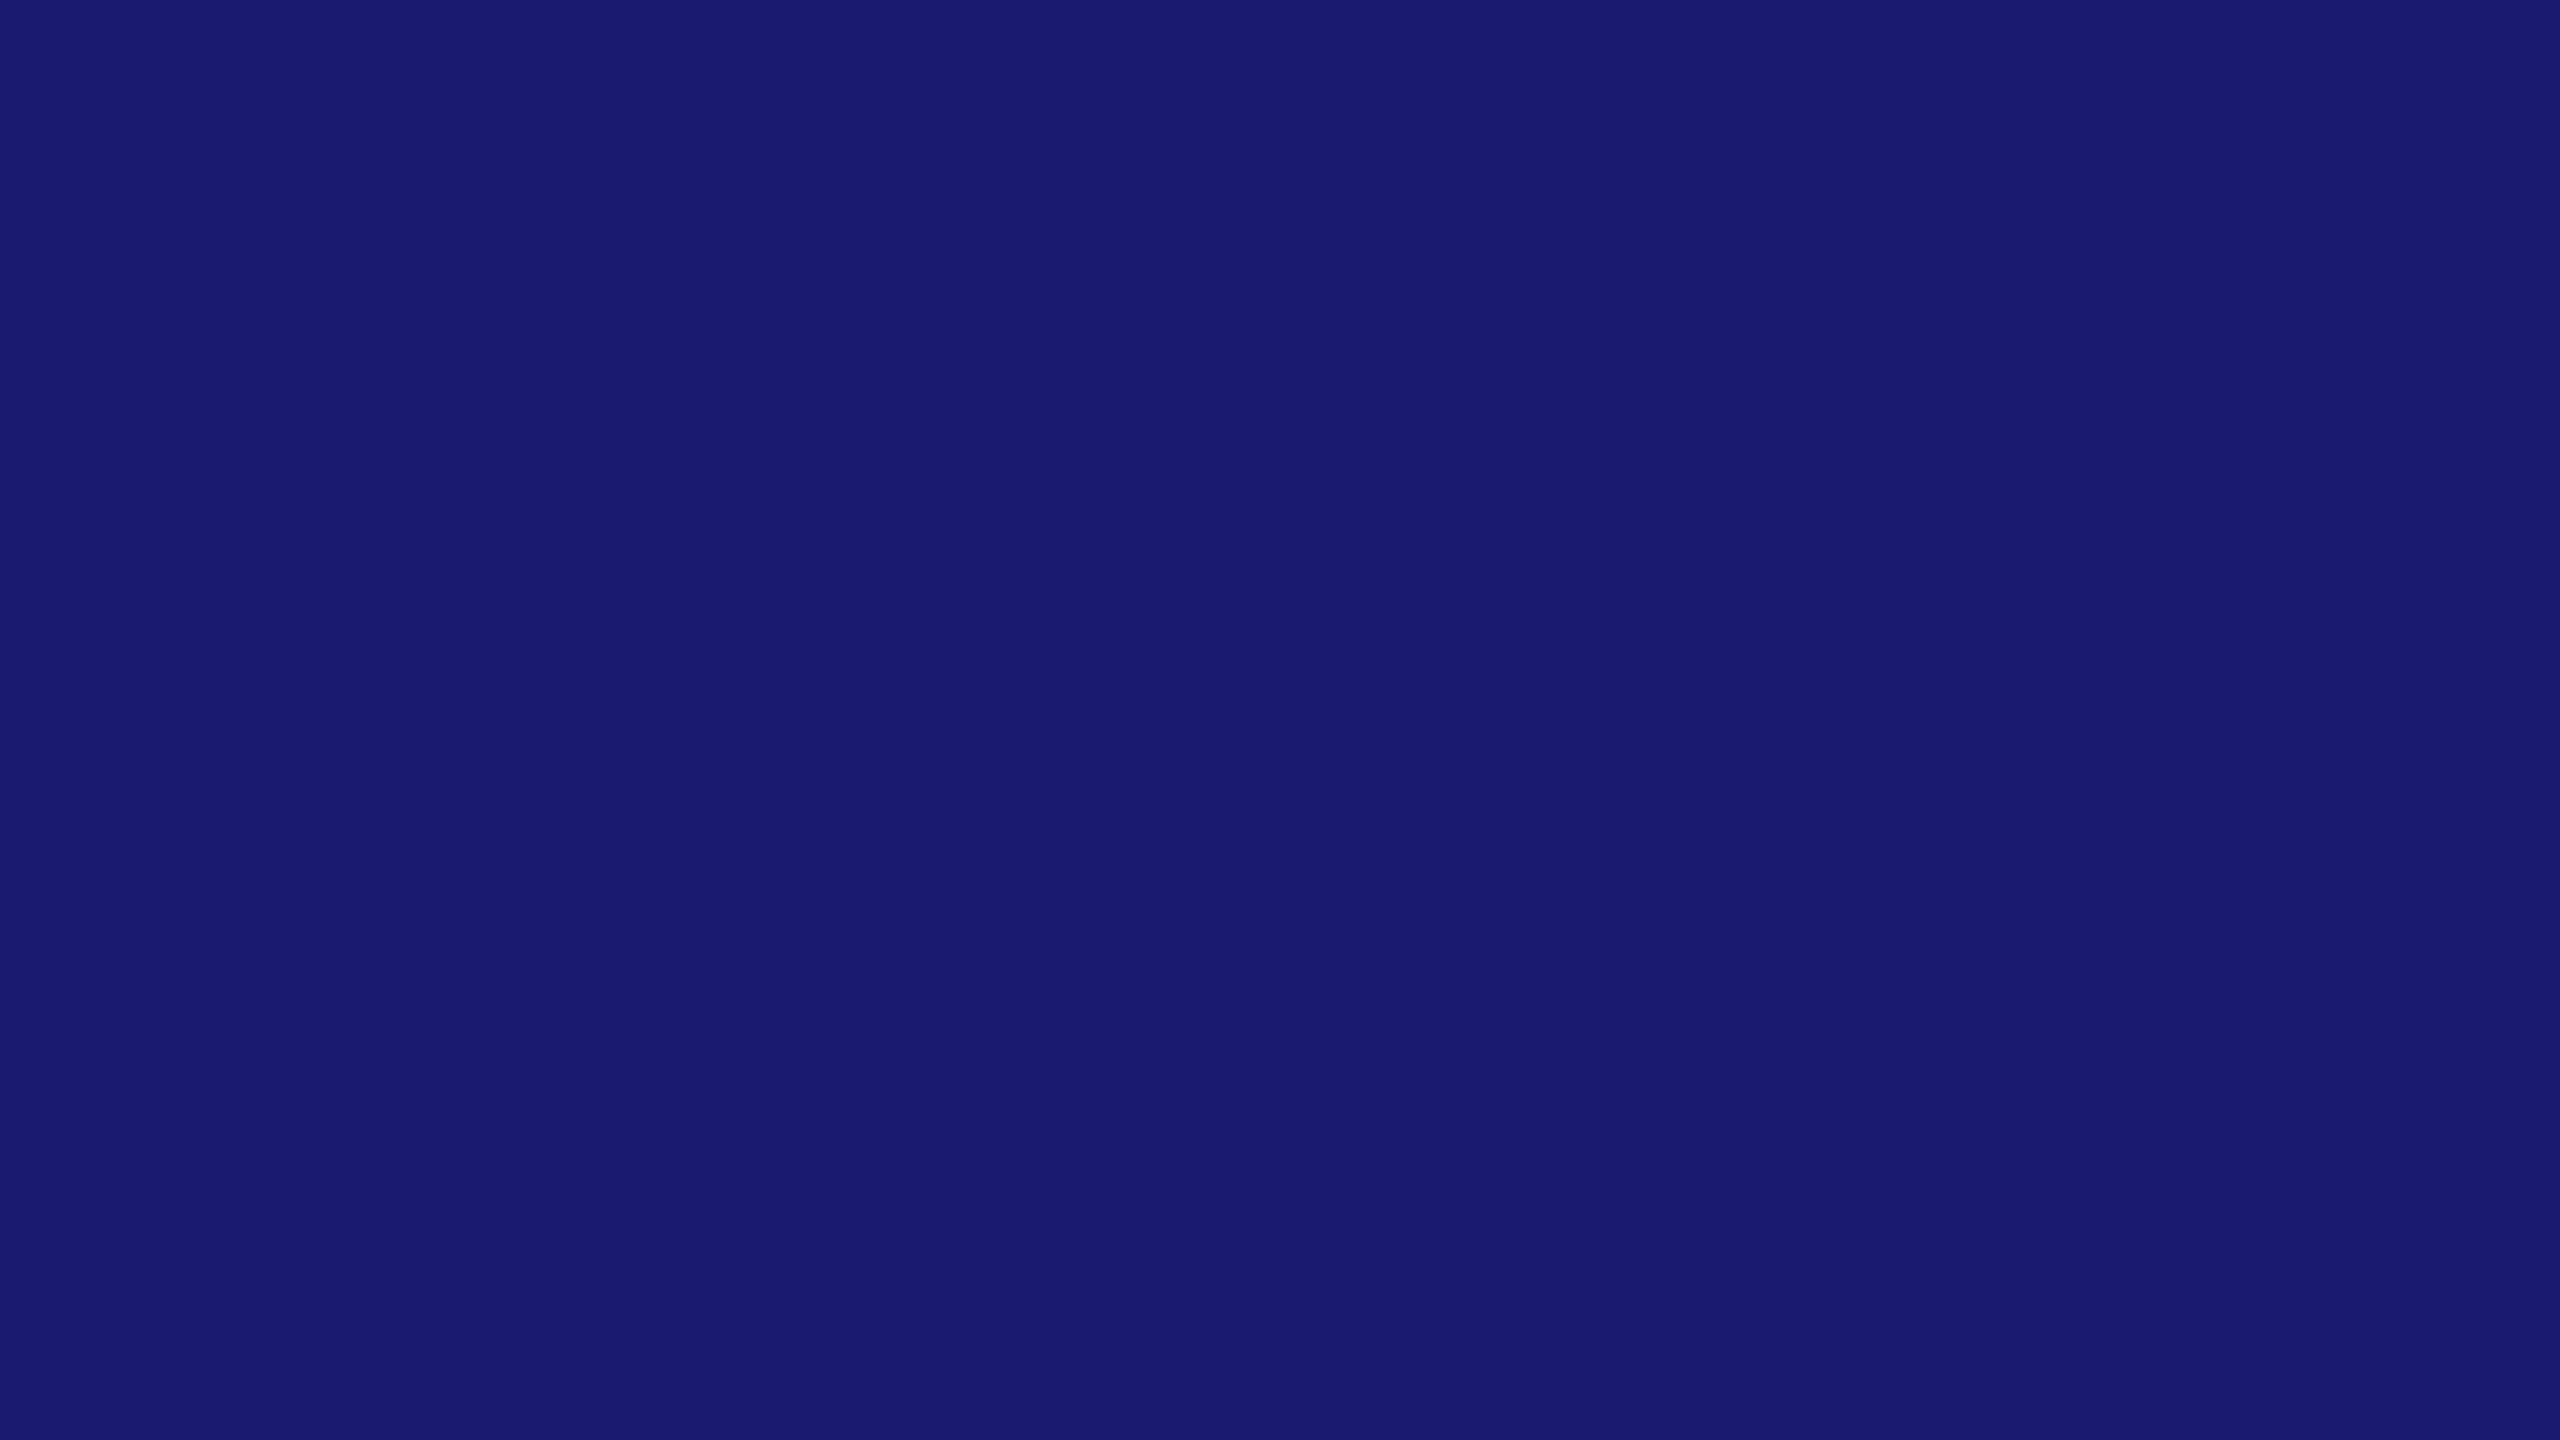 2560x1440 Midnight Blue Refrence  Midnight Blue solid Color Background